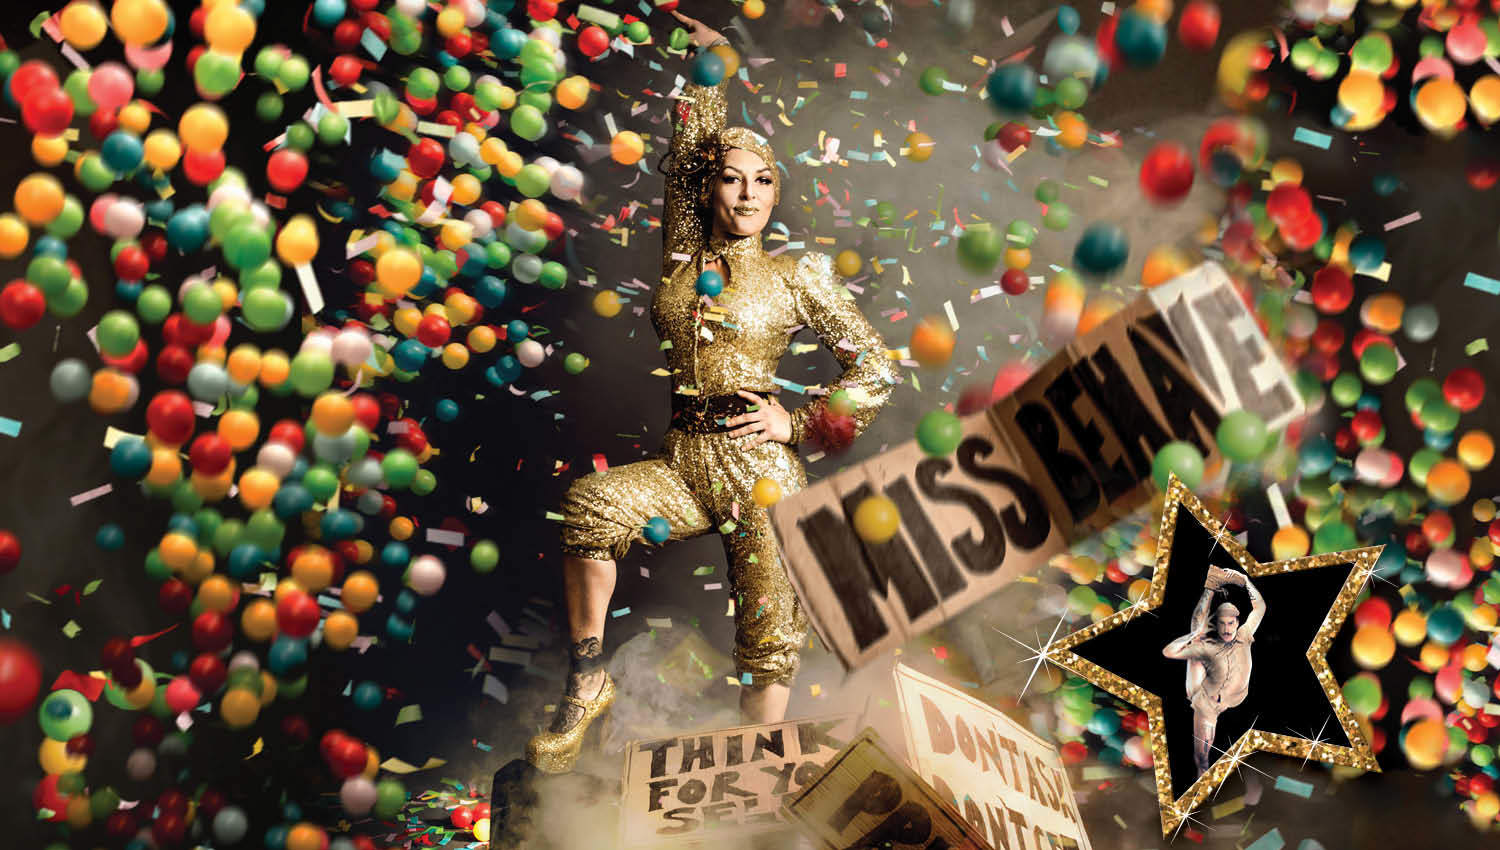 BWW Review: THE MISS BEHAVE GAMESHOW at Arts Centre Melbourne